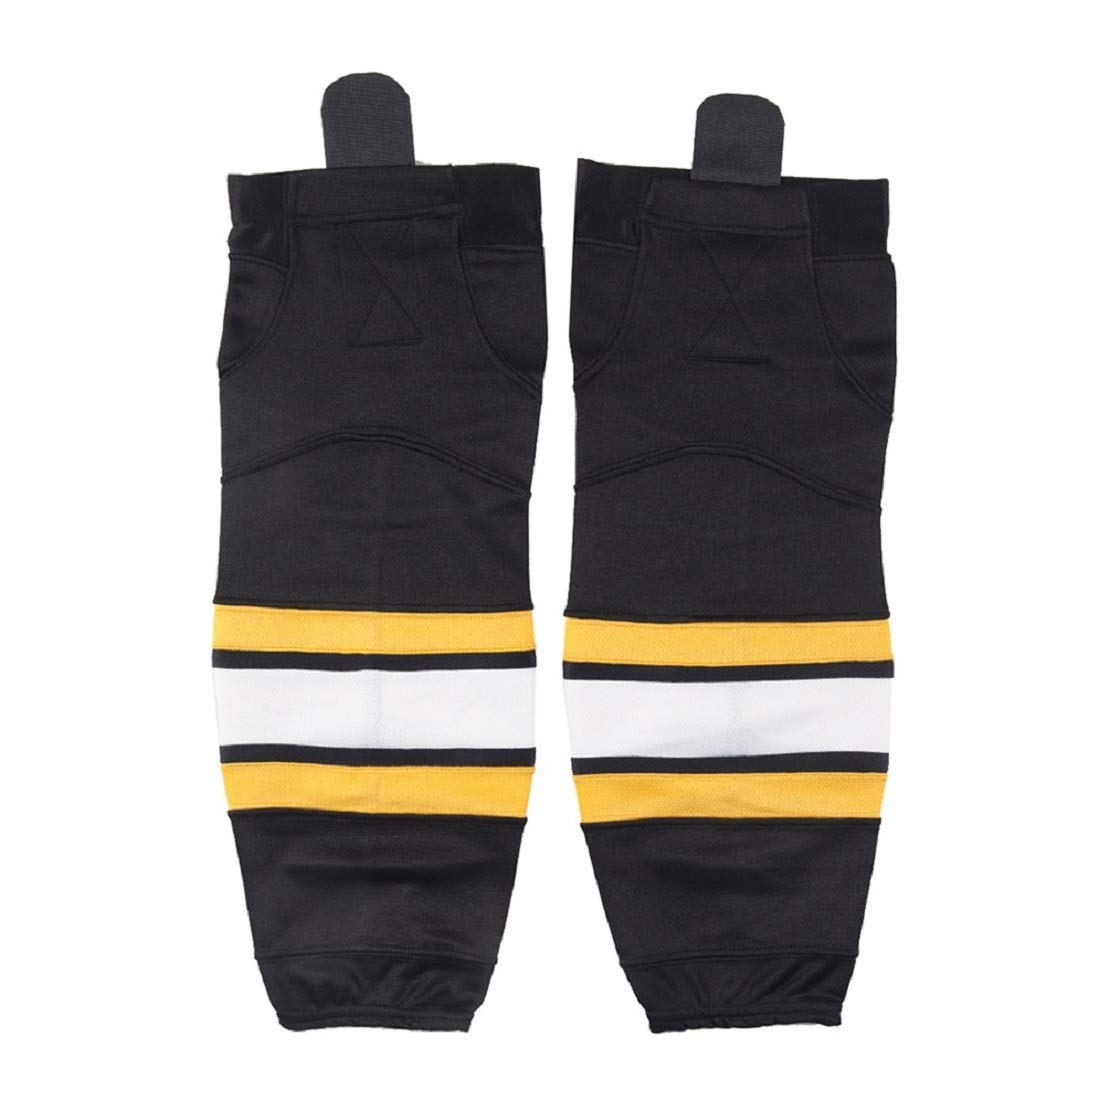 EALER Hockey Socks(2Pack), Mens & Boys Striped Color Dry Fit Mesh Practice Ice Hockey Sock. by EALER